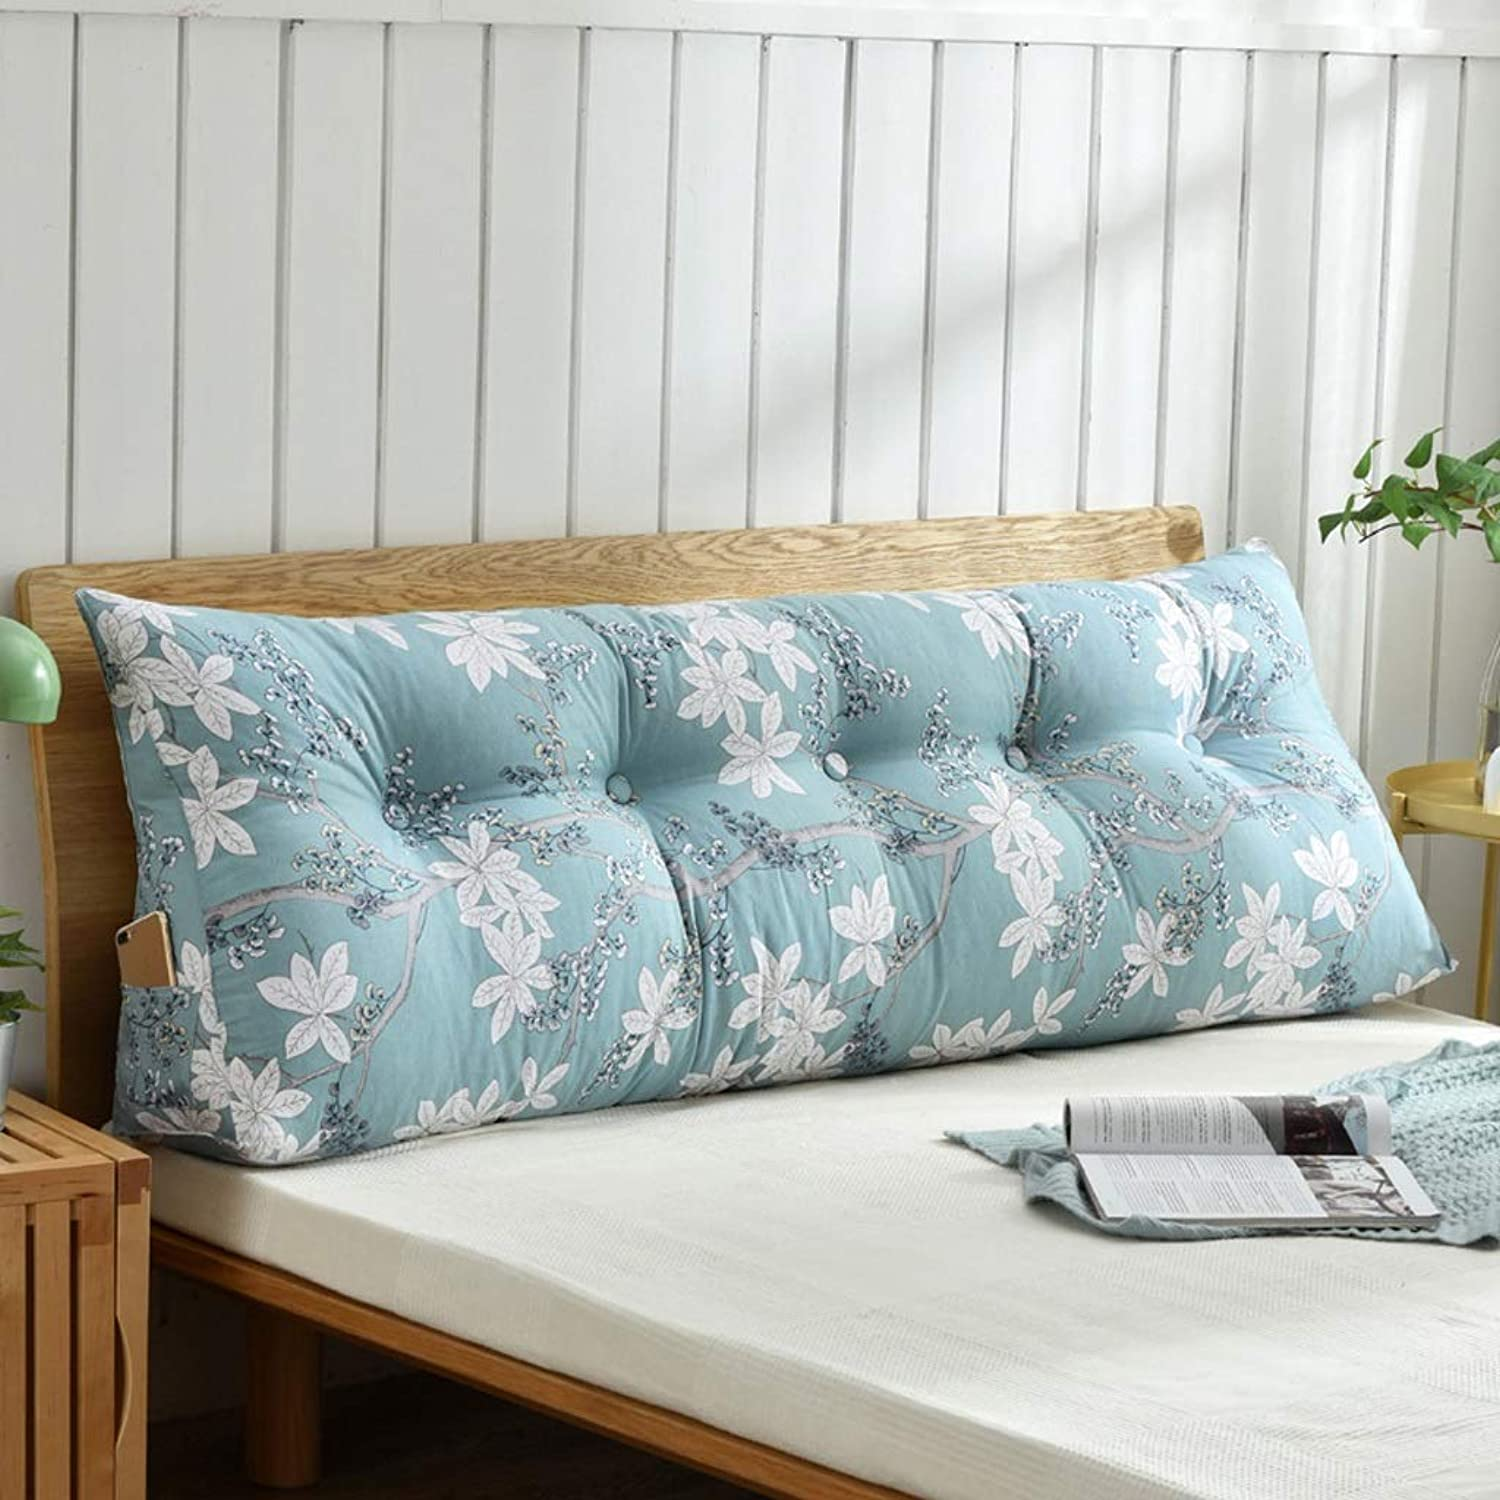 Headboard Cushion Waist Back Reading Pillow Backrest Big Cushion on The Bed Sofa (Size   60CM)